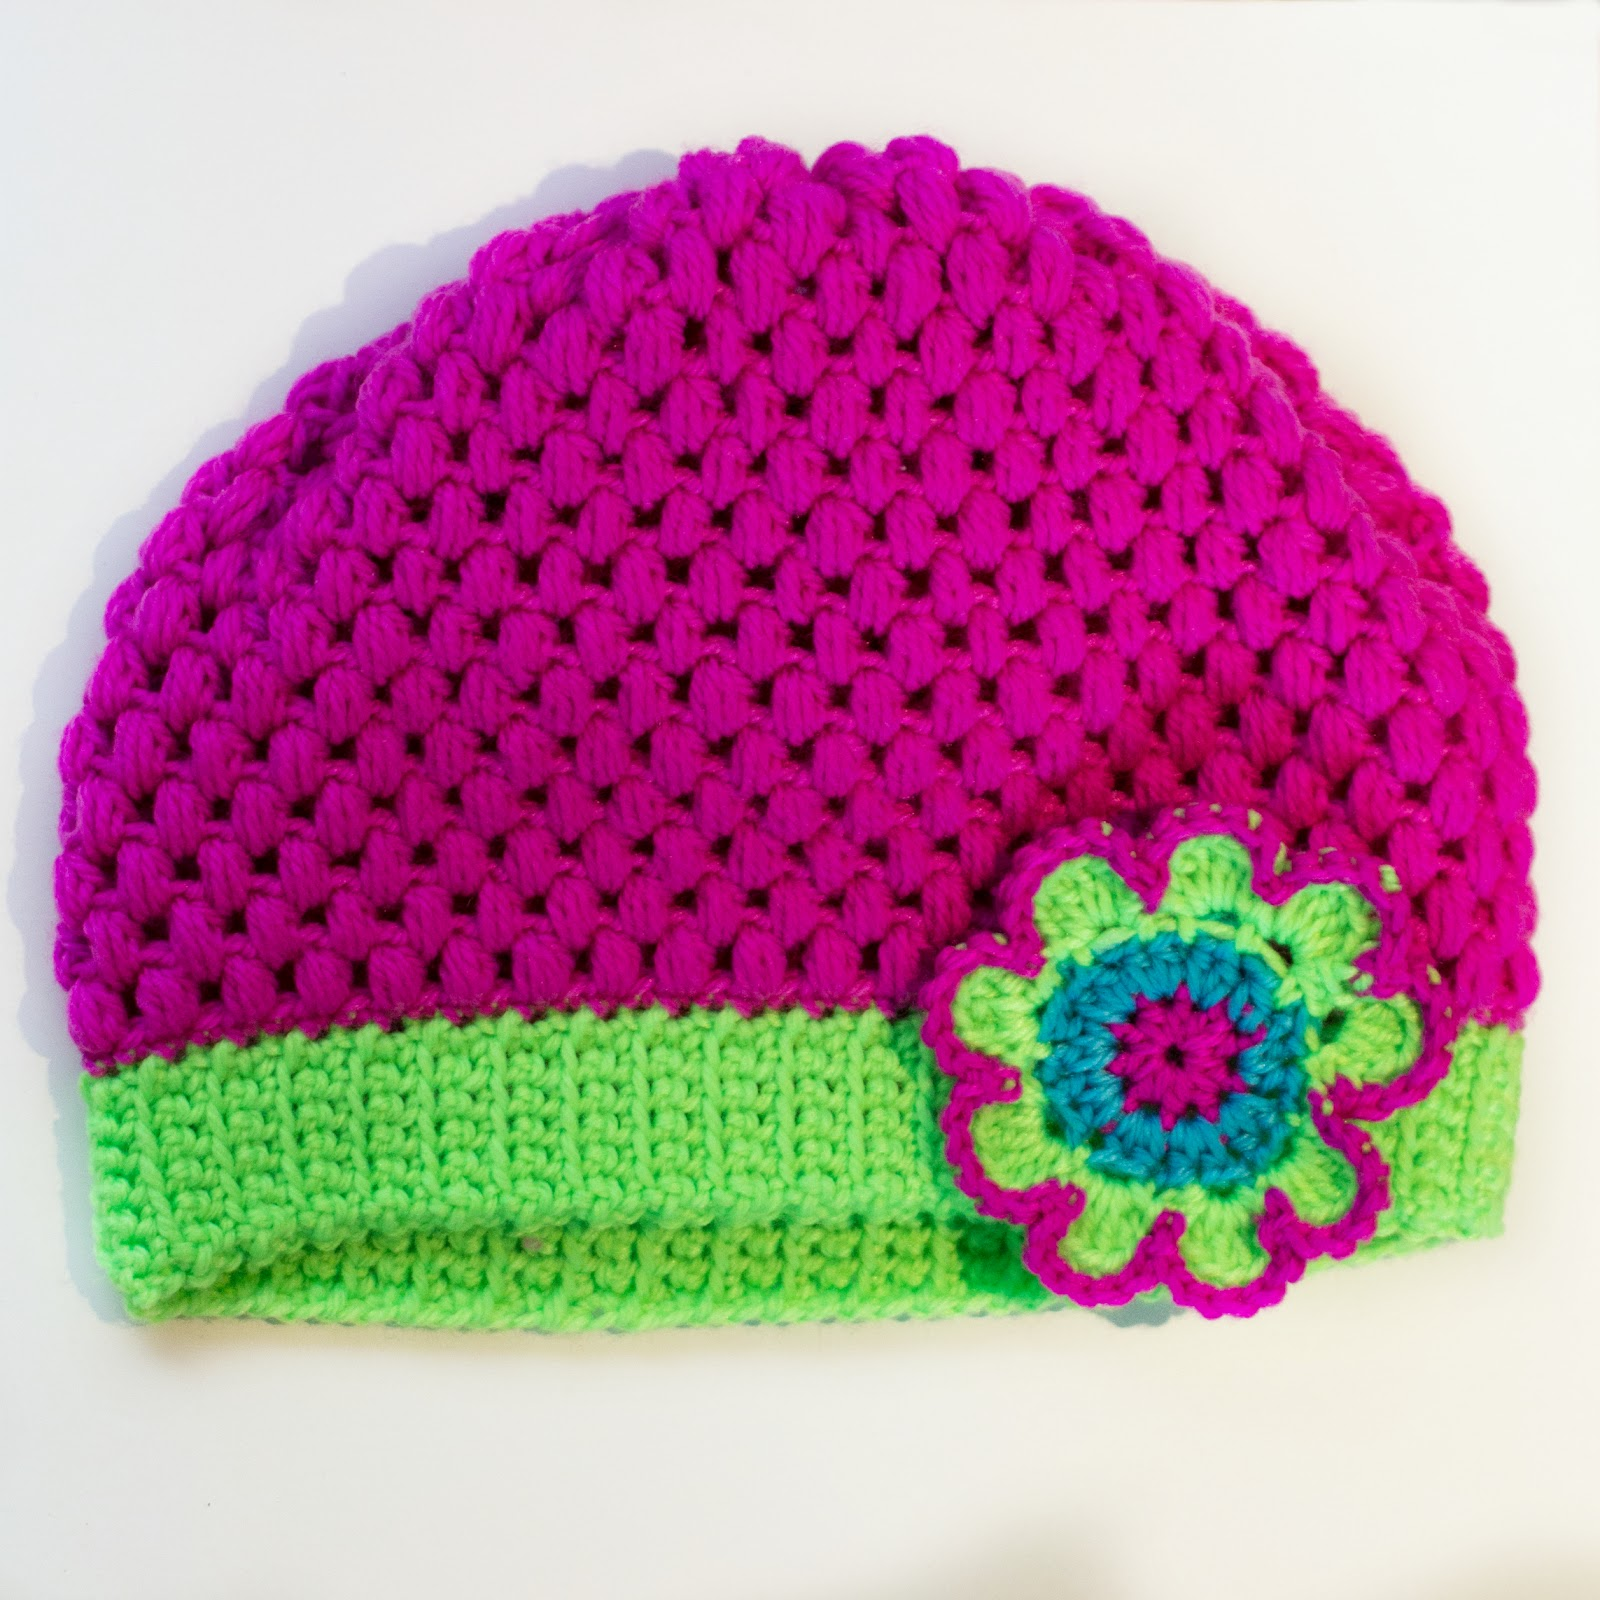 Crochet Hat Patterns Flowers : Hopeful Honey Craft, Crochet, Create: Bouquet of Flowers ...